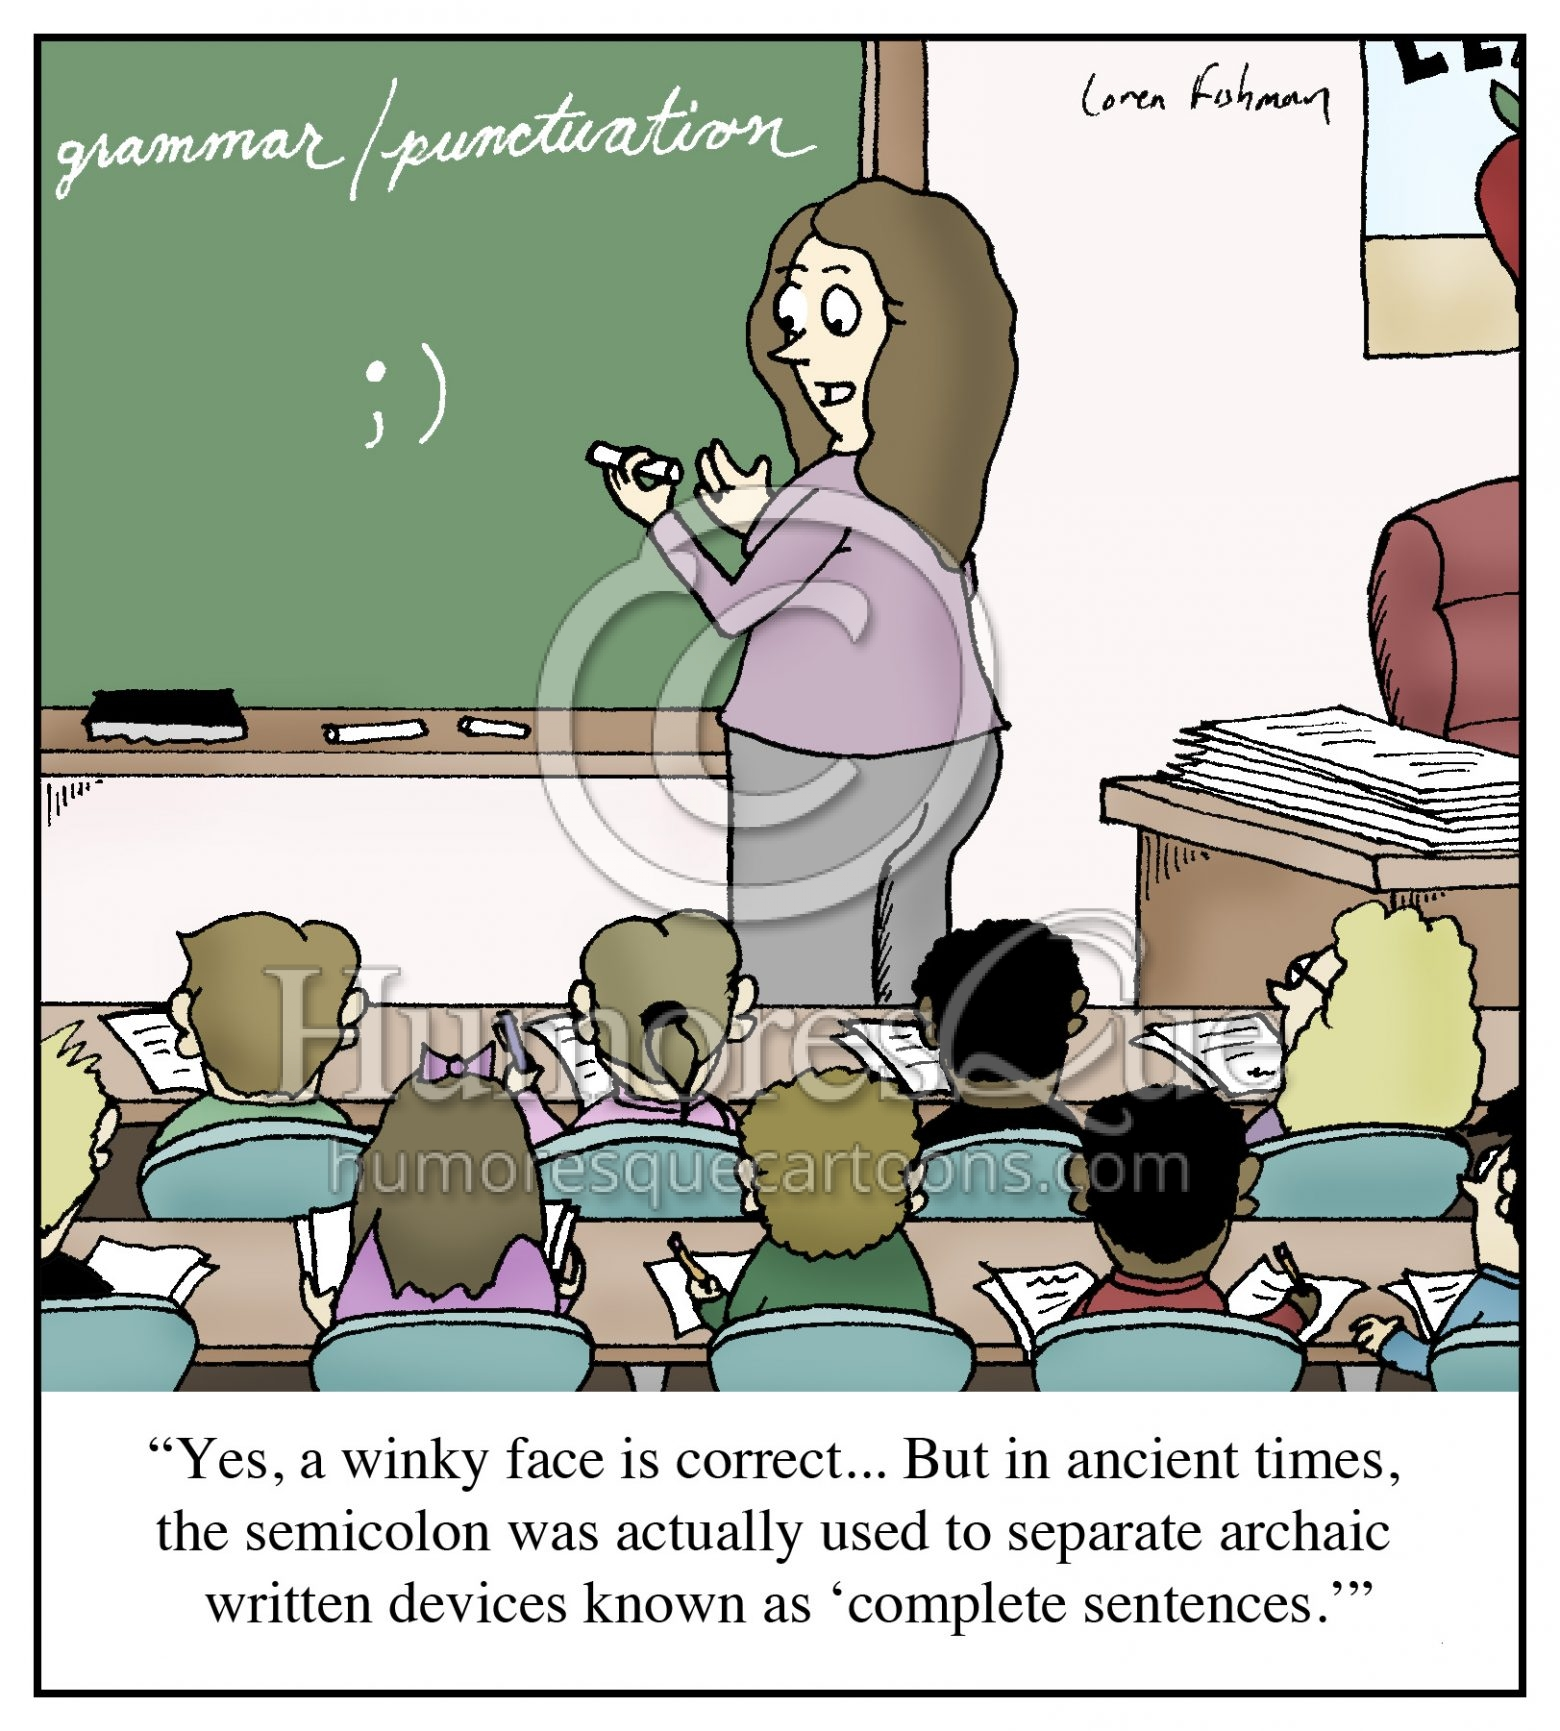 semicolon use grammar cartoon